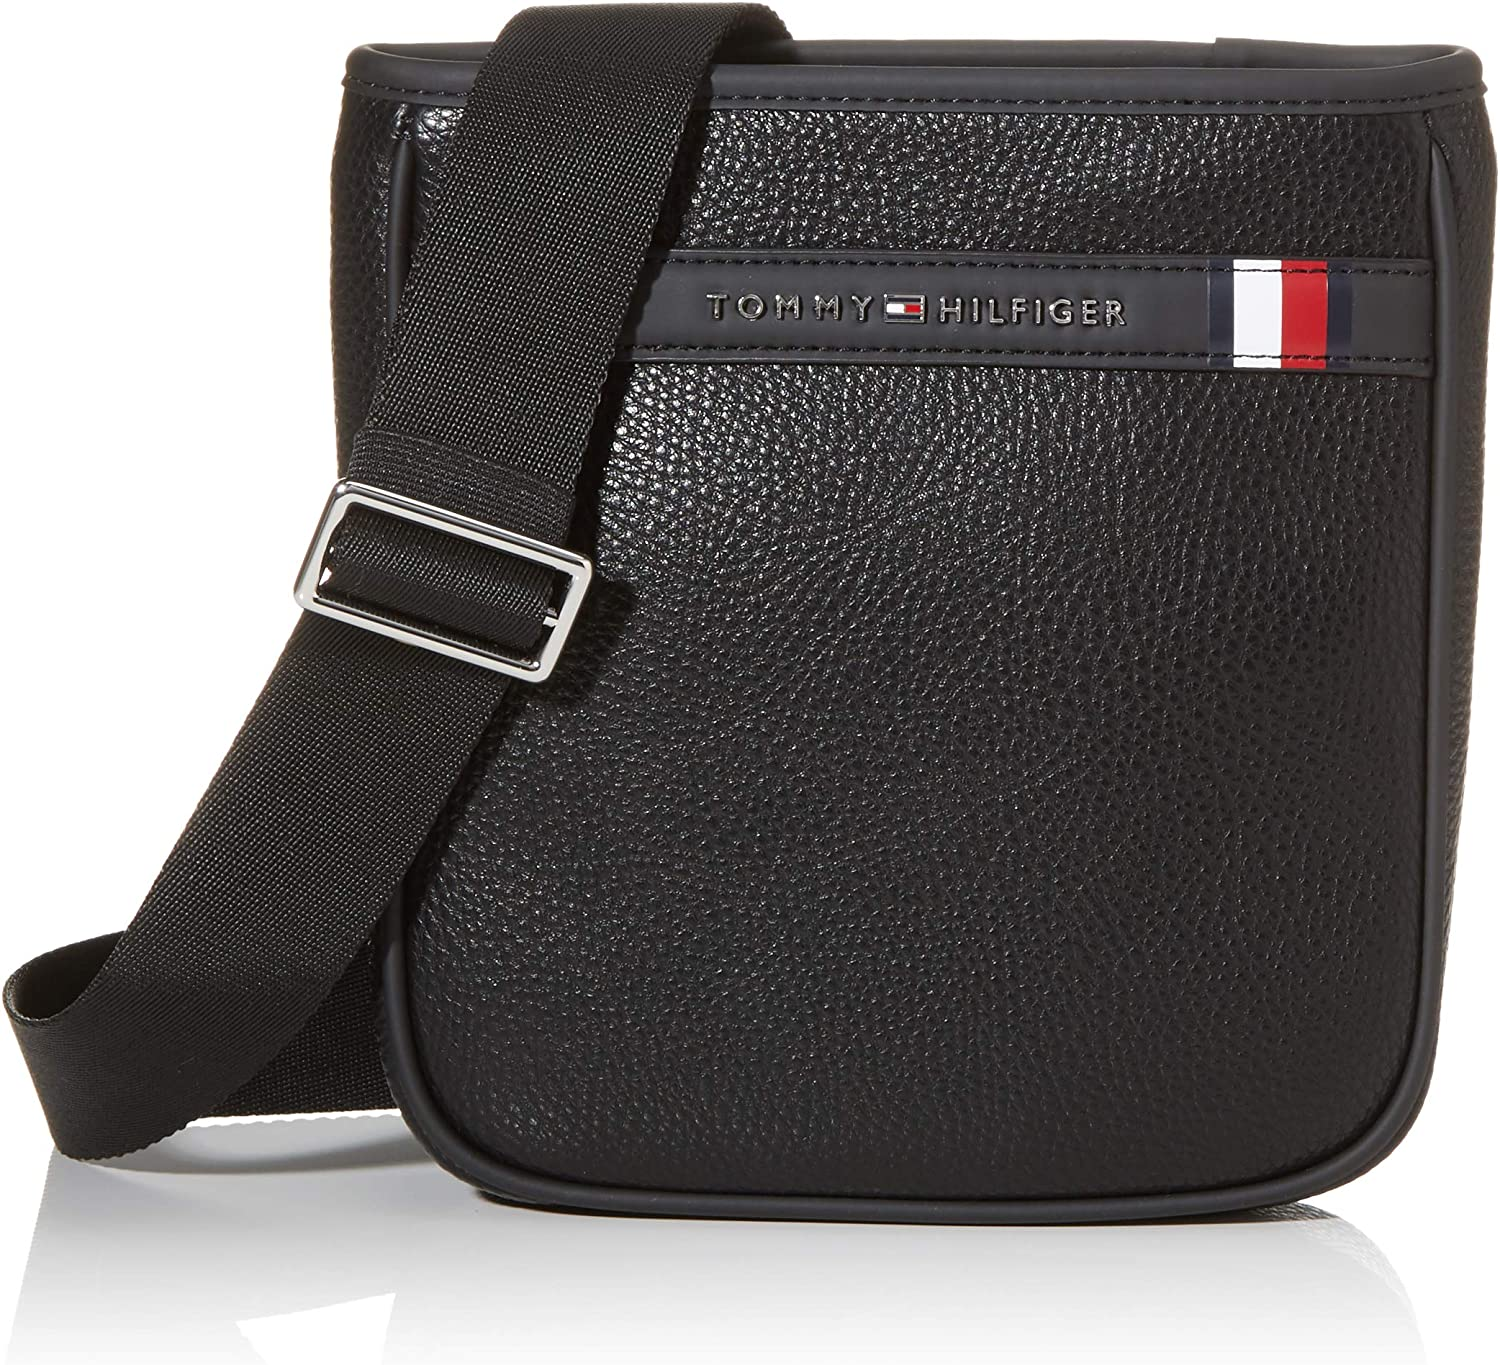 Tommy Hilfiger - Th Downtown Mini Crossover, Bolso bandolera Hombre, Negro (Black), 1x1x1 cm (W x H L)